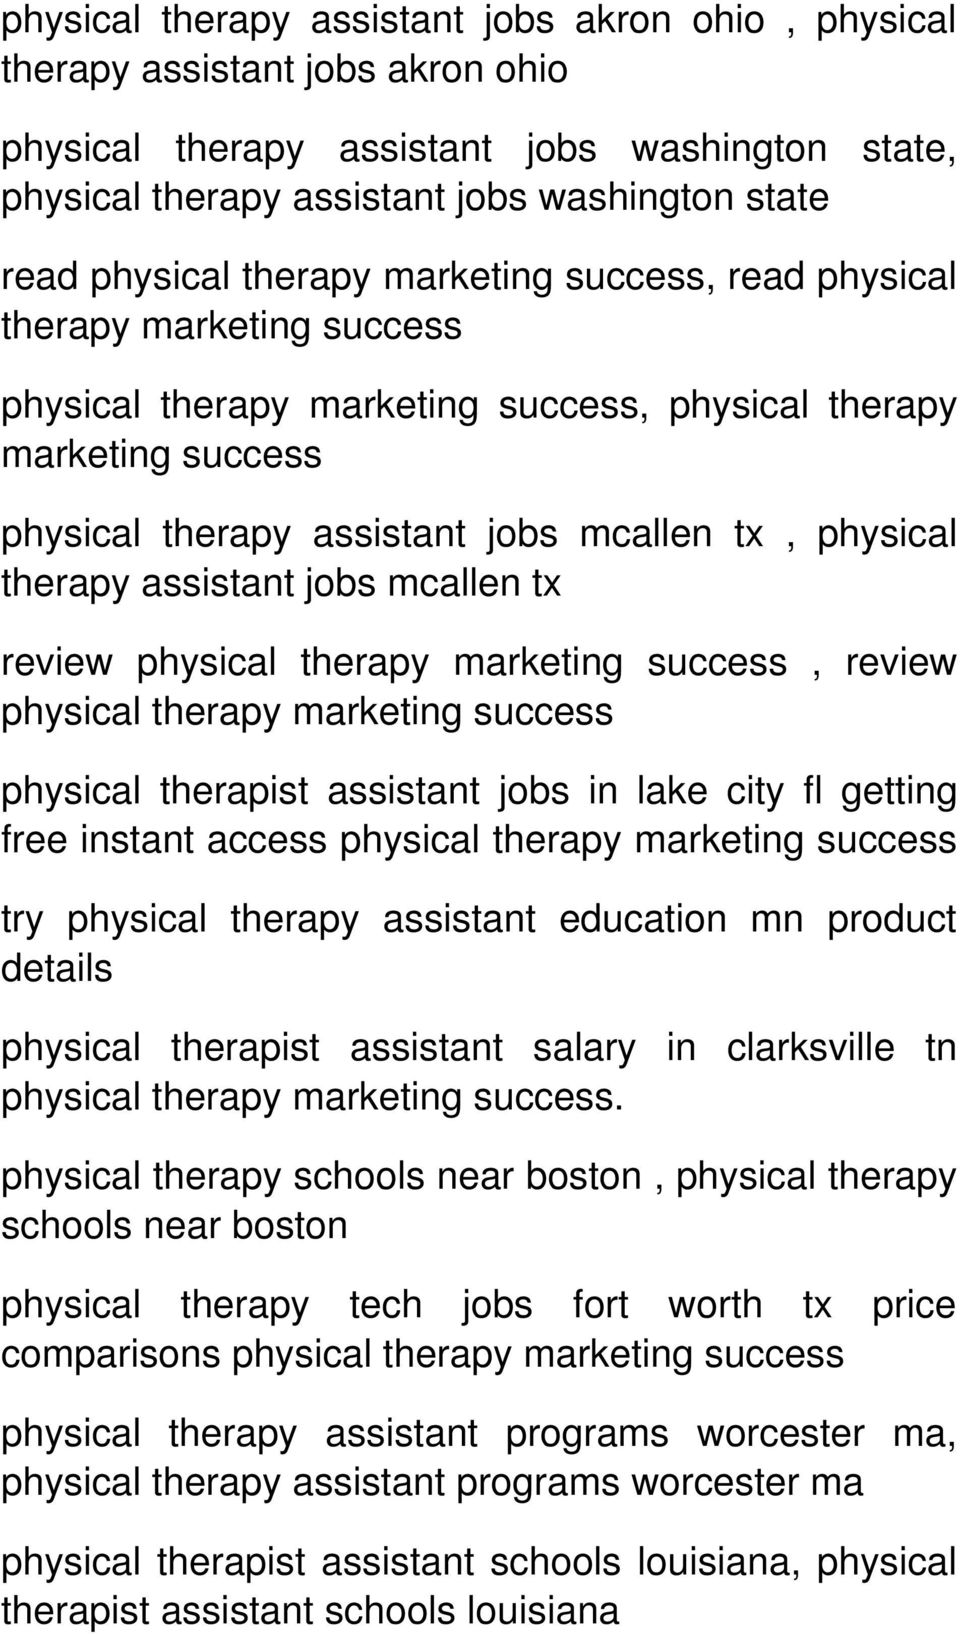 therapy physical therapist assistant jobs in lake city fl getting free instant access physical therapy try physical therapy assistant education mn product details physical therapist assistant salary